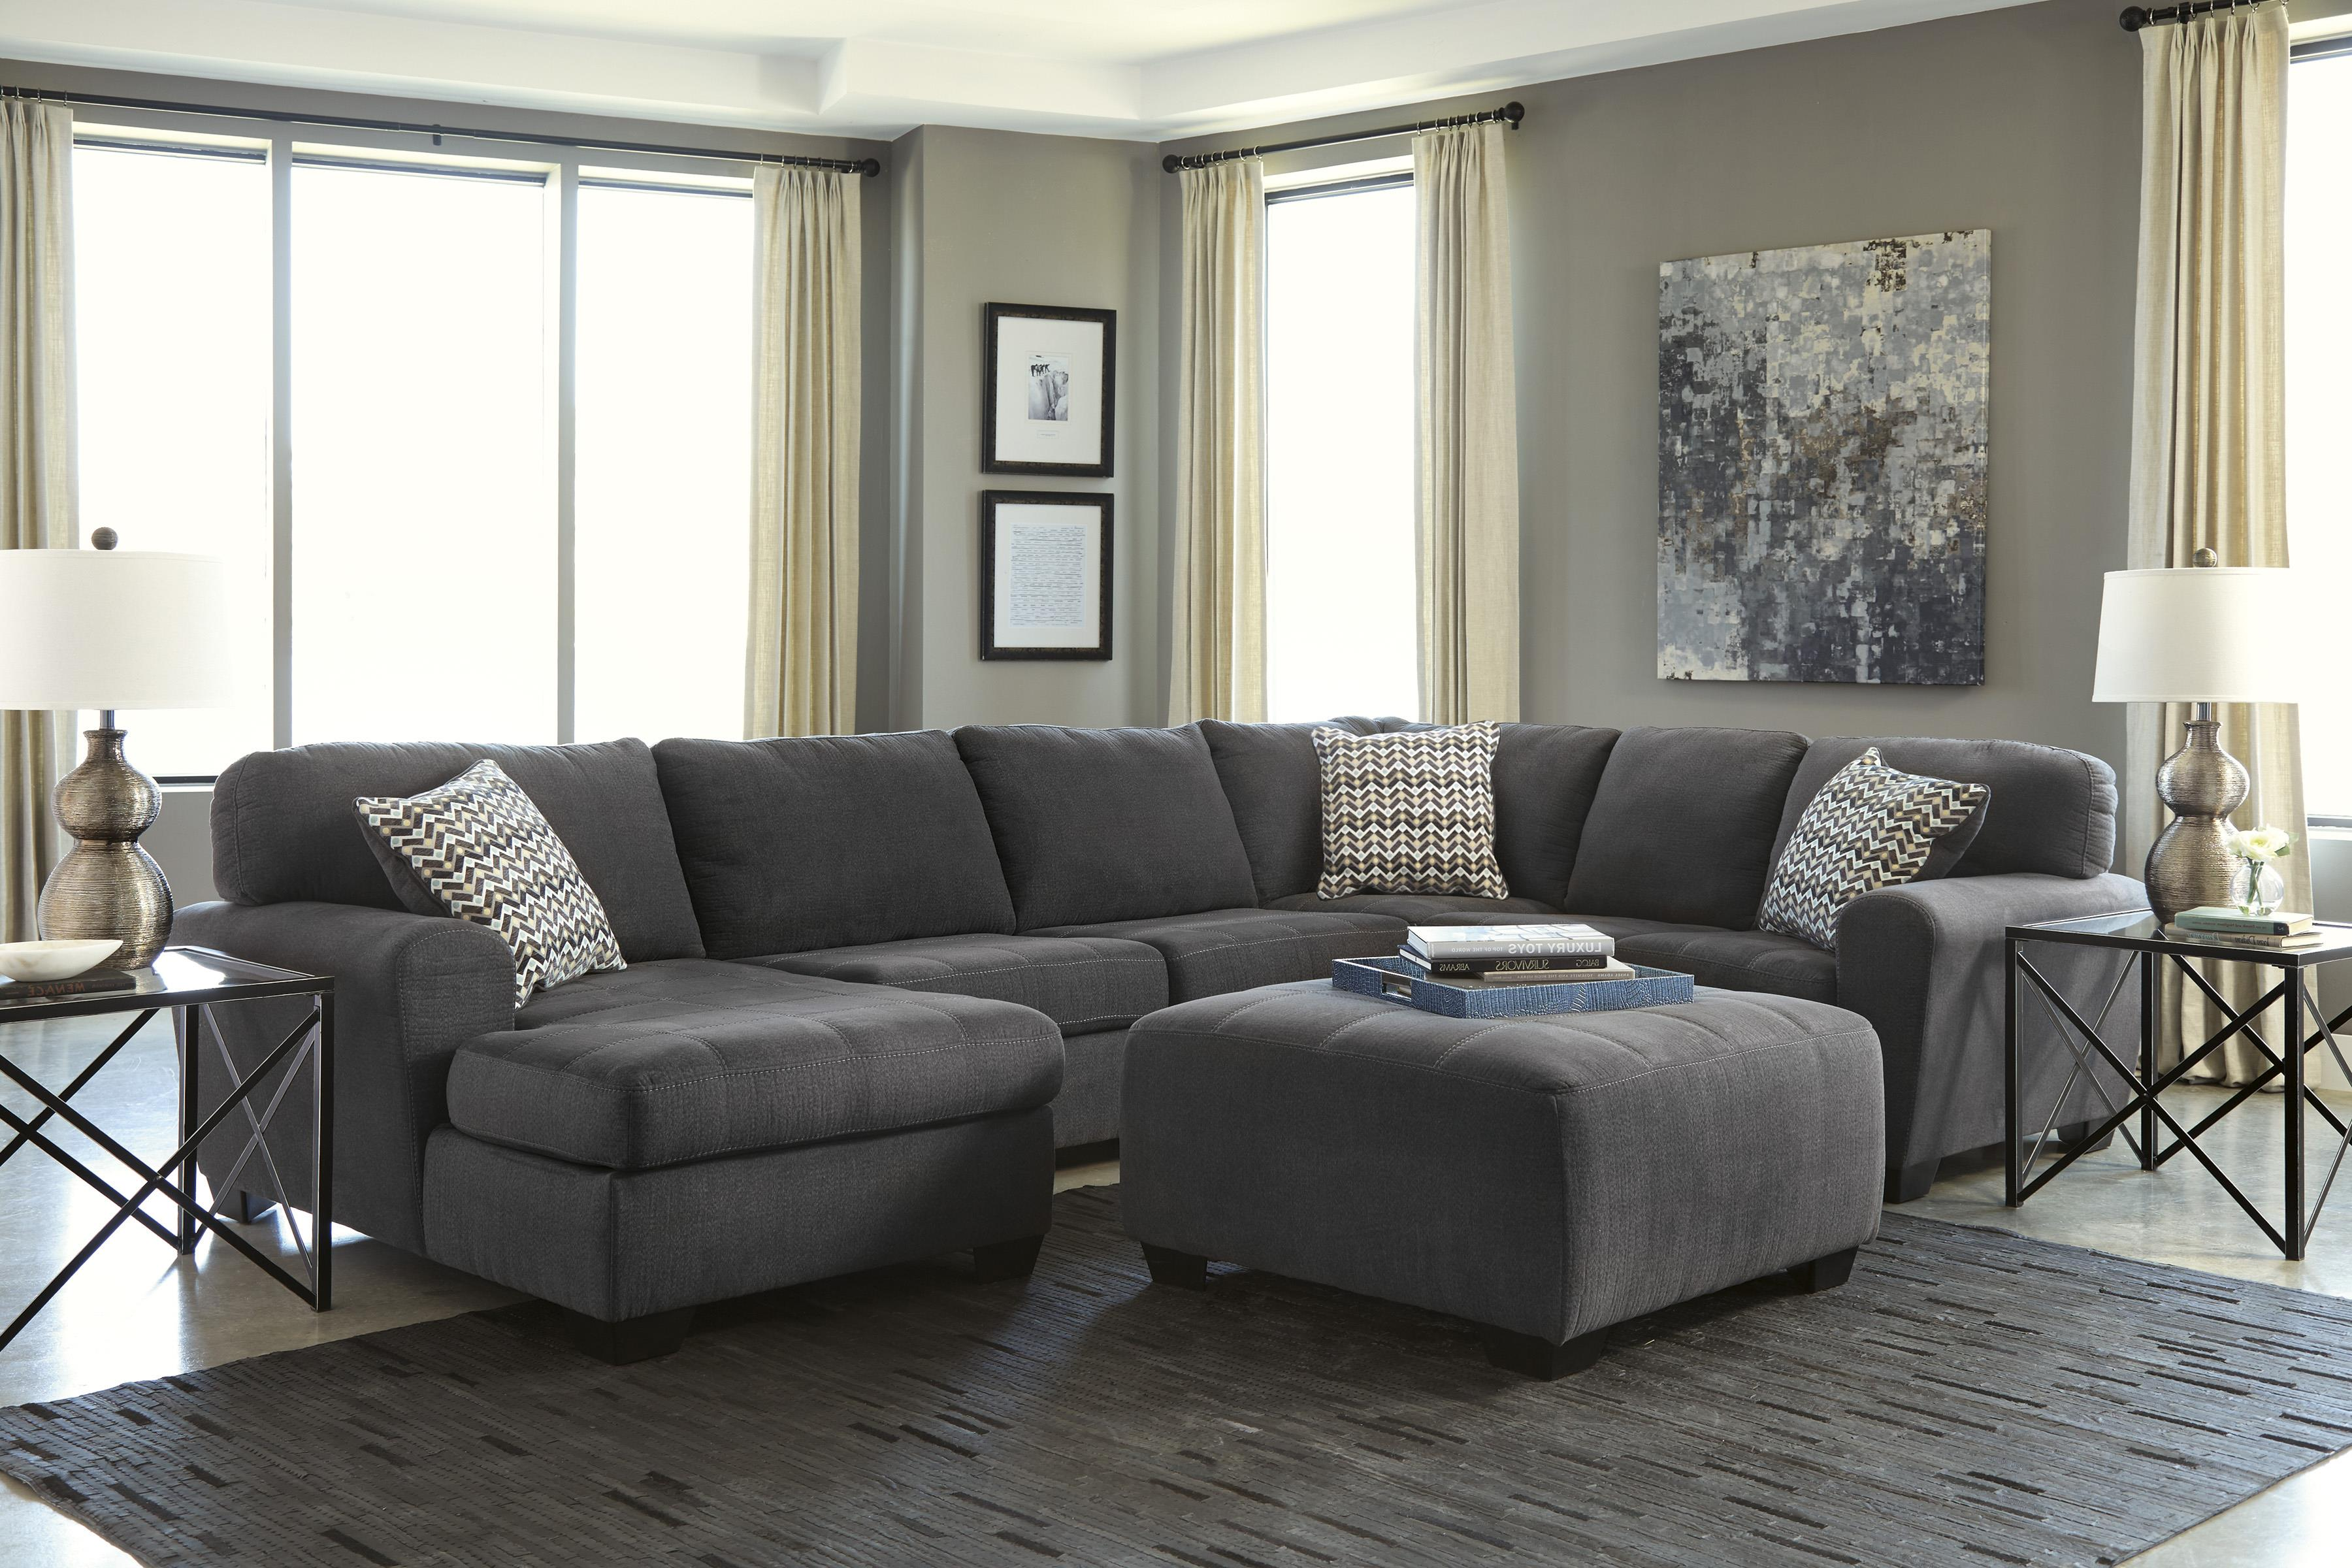 Sorenton Stationary Living Room Group by Benchcraft at Miller Waldrop Furniture and Decor